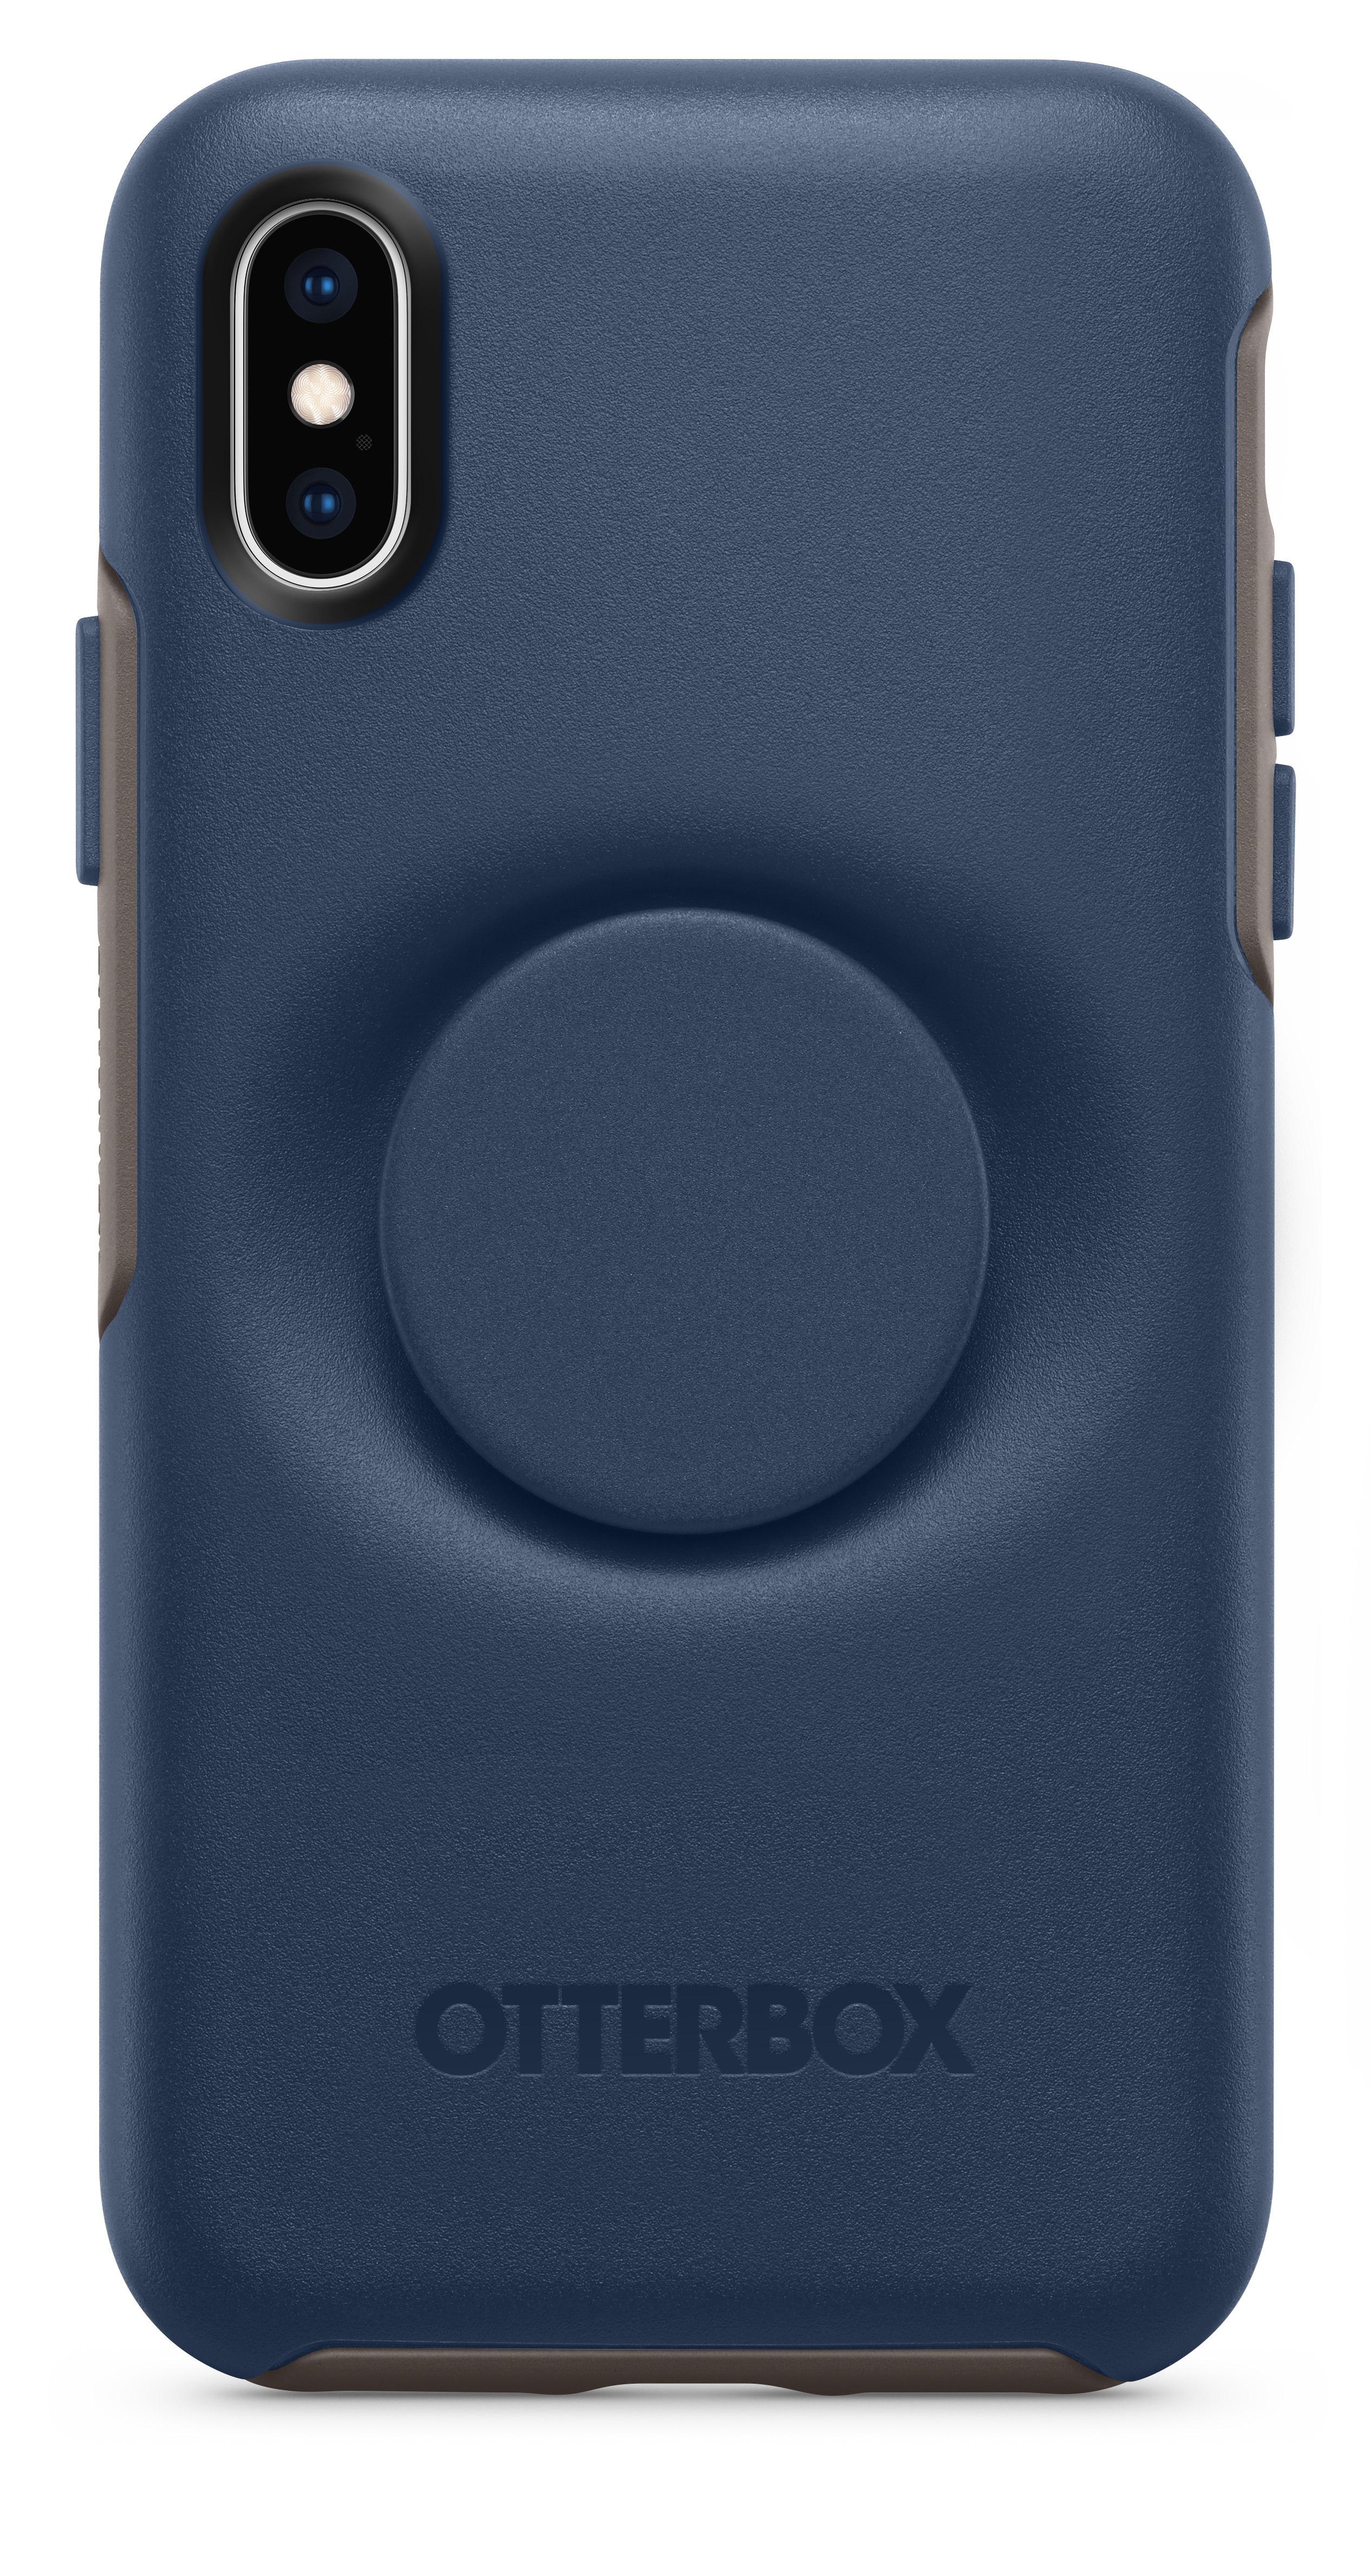 buy popular 9c566 a621b OtterBox Otter + Pop Symmetry Series Case for iPhone X / XS